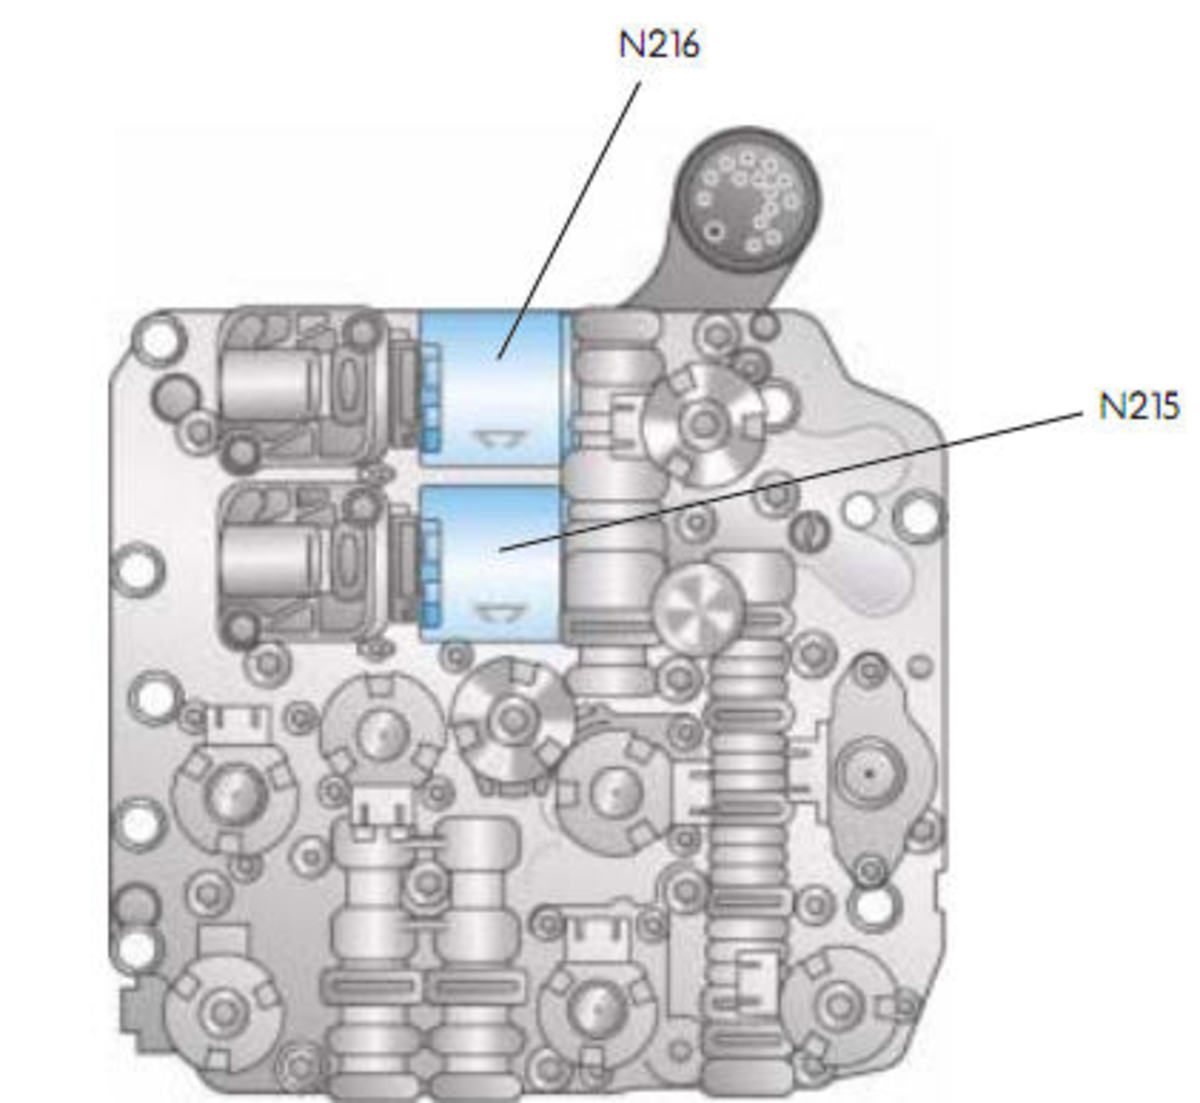 The Mechatronics of the Volkswagen Dual-Clutch Transmission